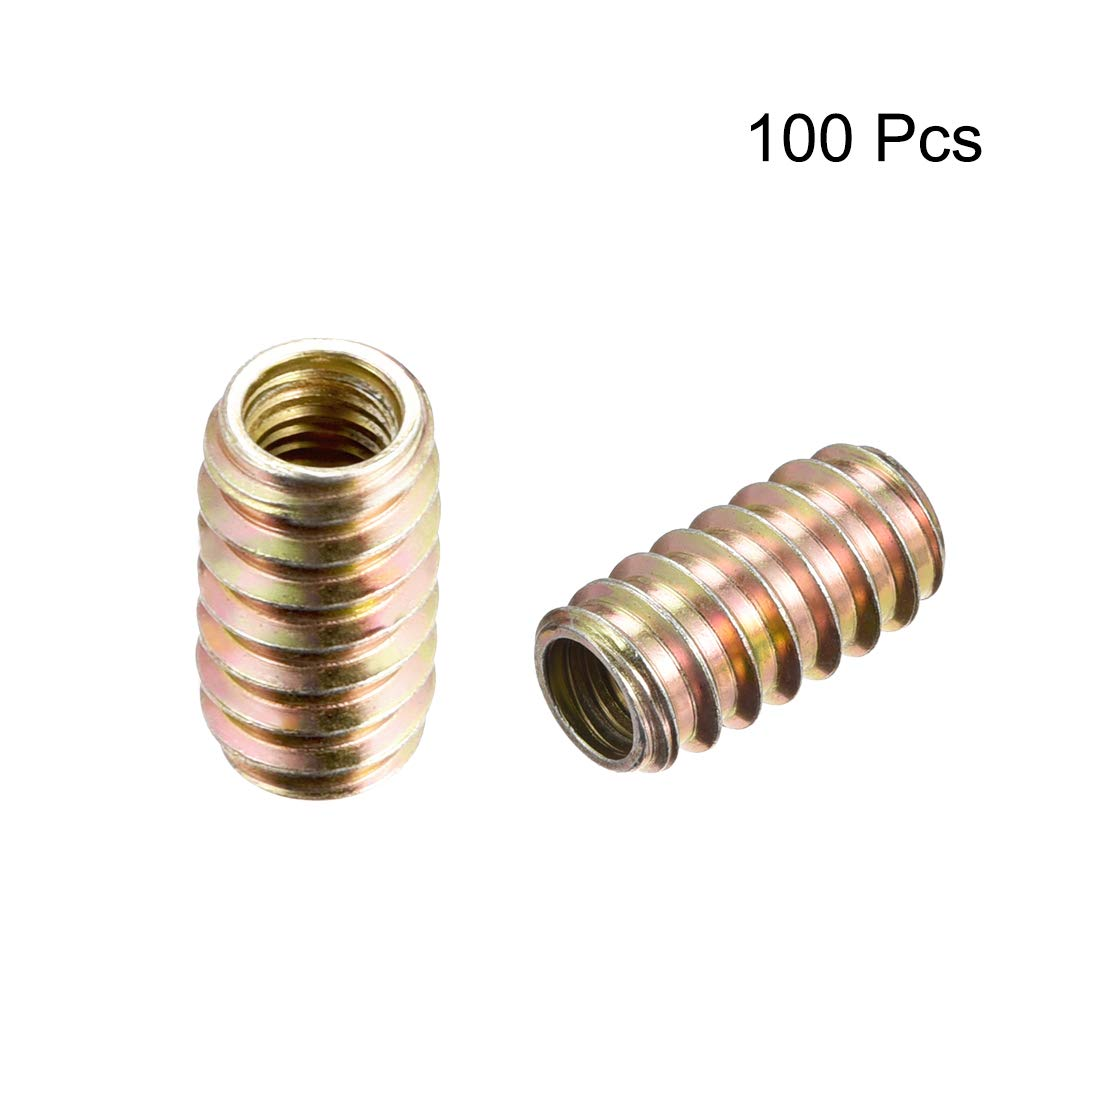 uxcell Furniture Threaded Insert Nut Carbon Steel M8 Internal Thread 25mm Length 20pcs